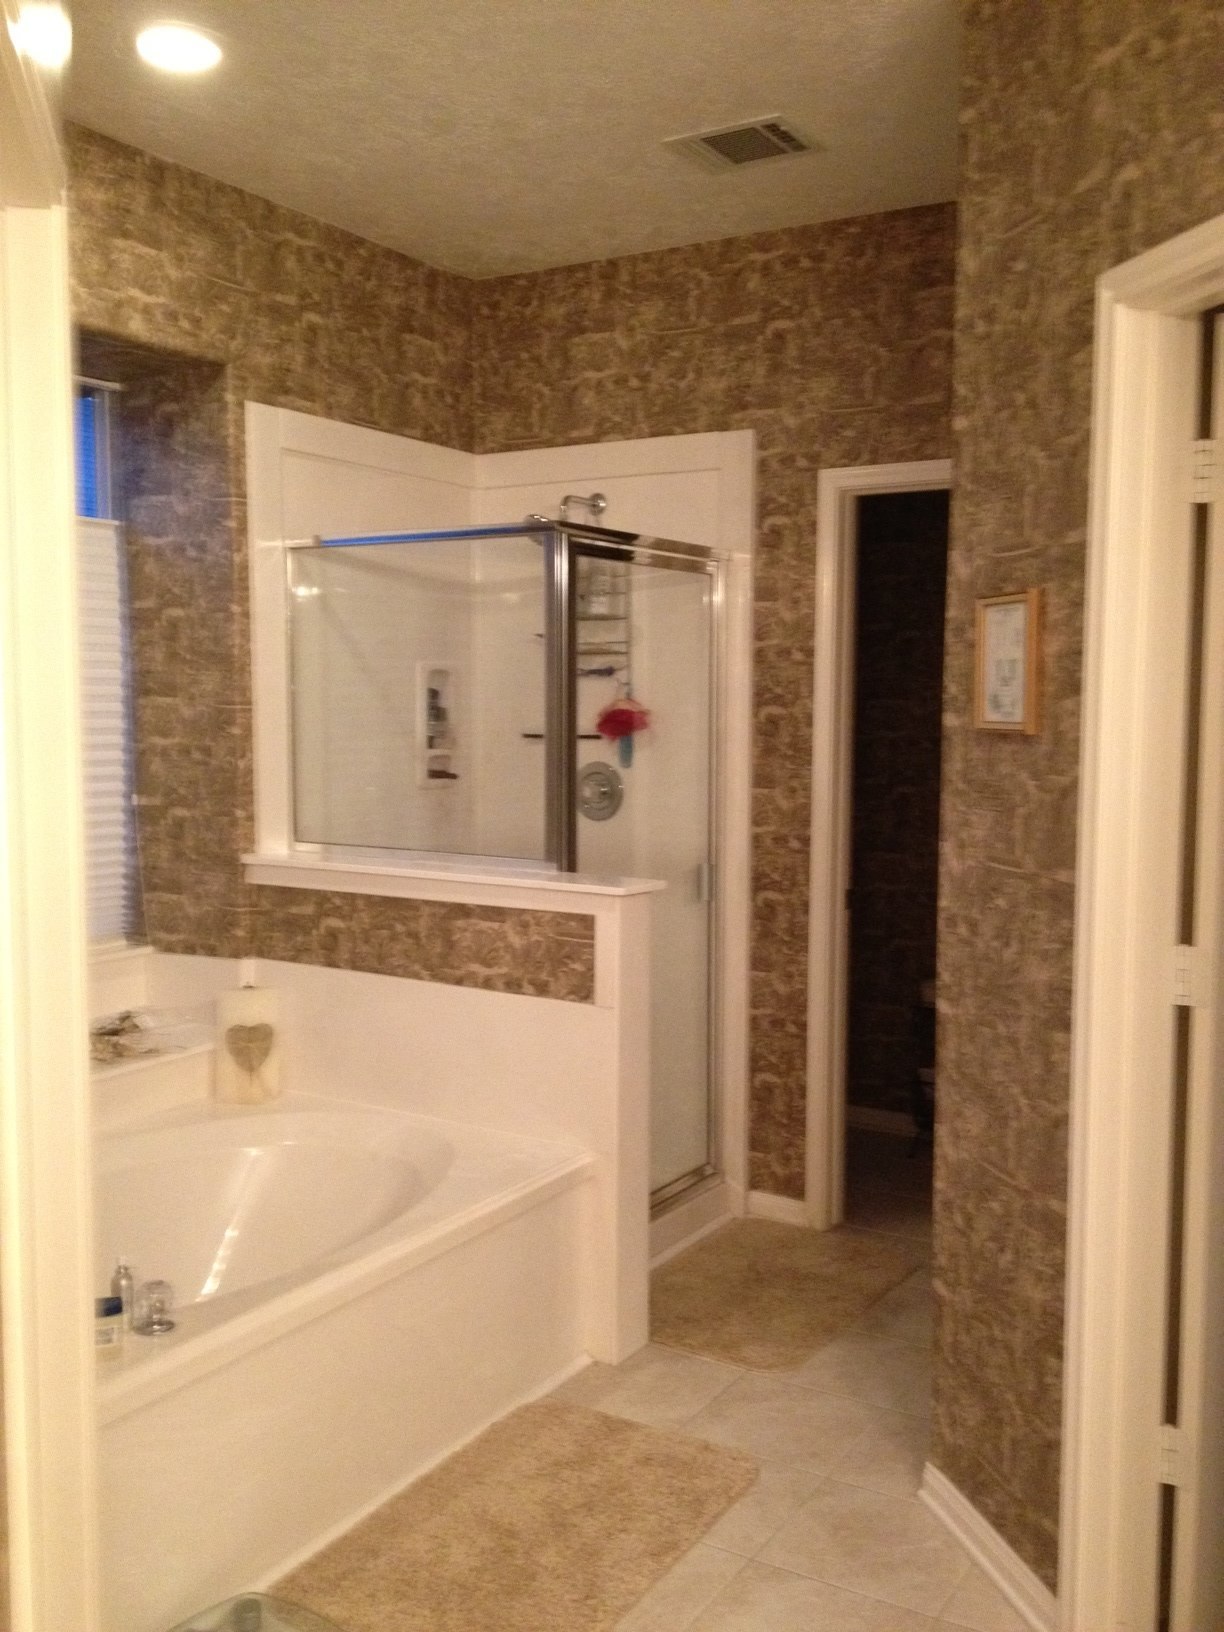 Master bathroom wallpaper HELP bath1jpg 1224x1632